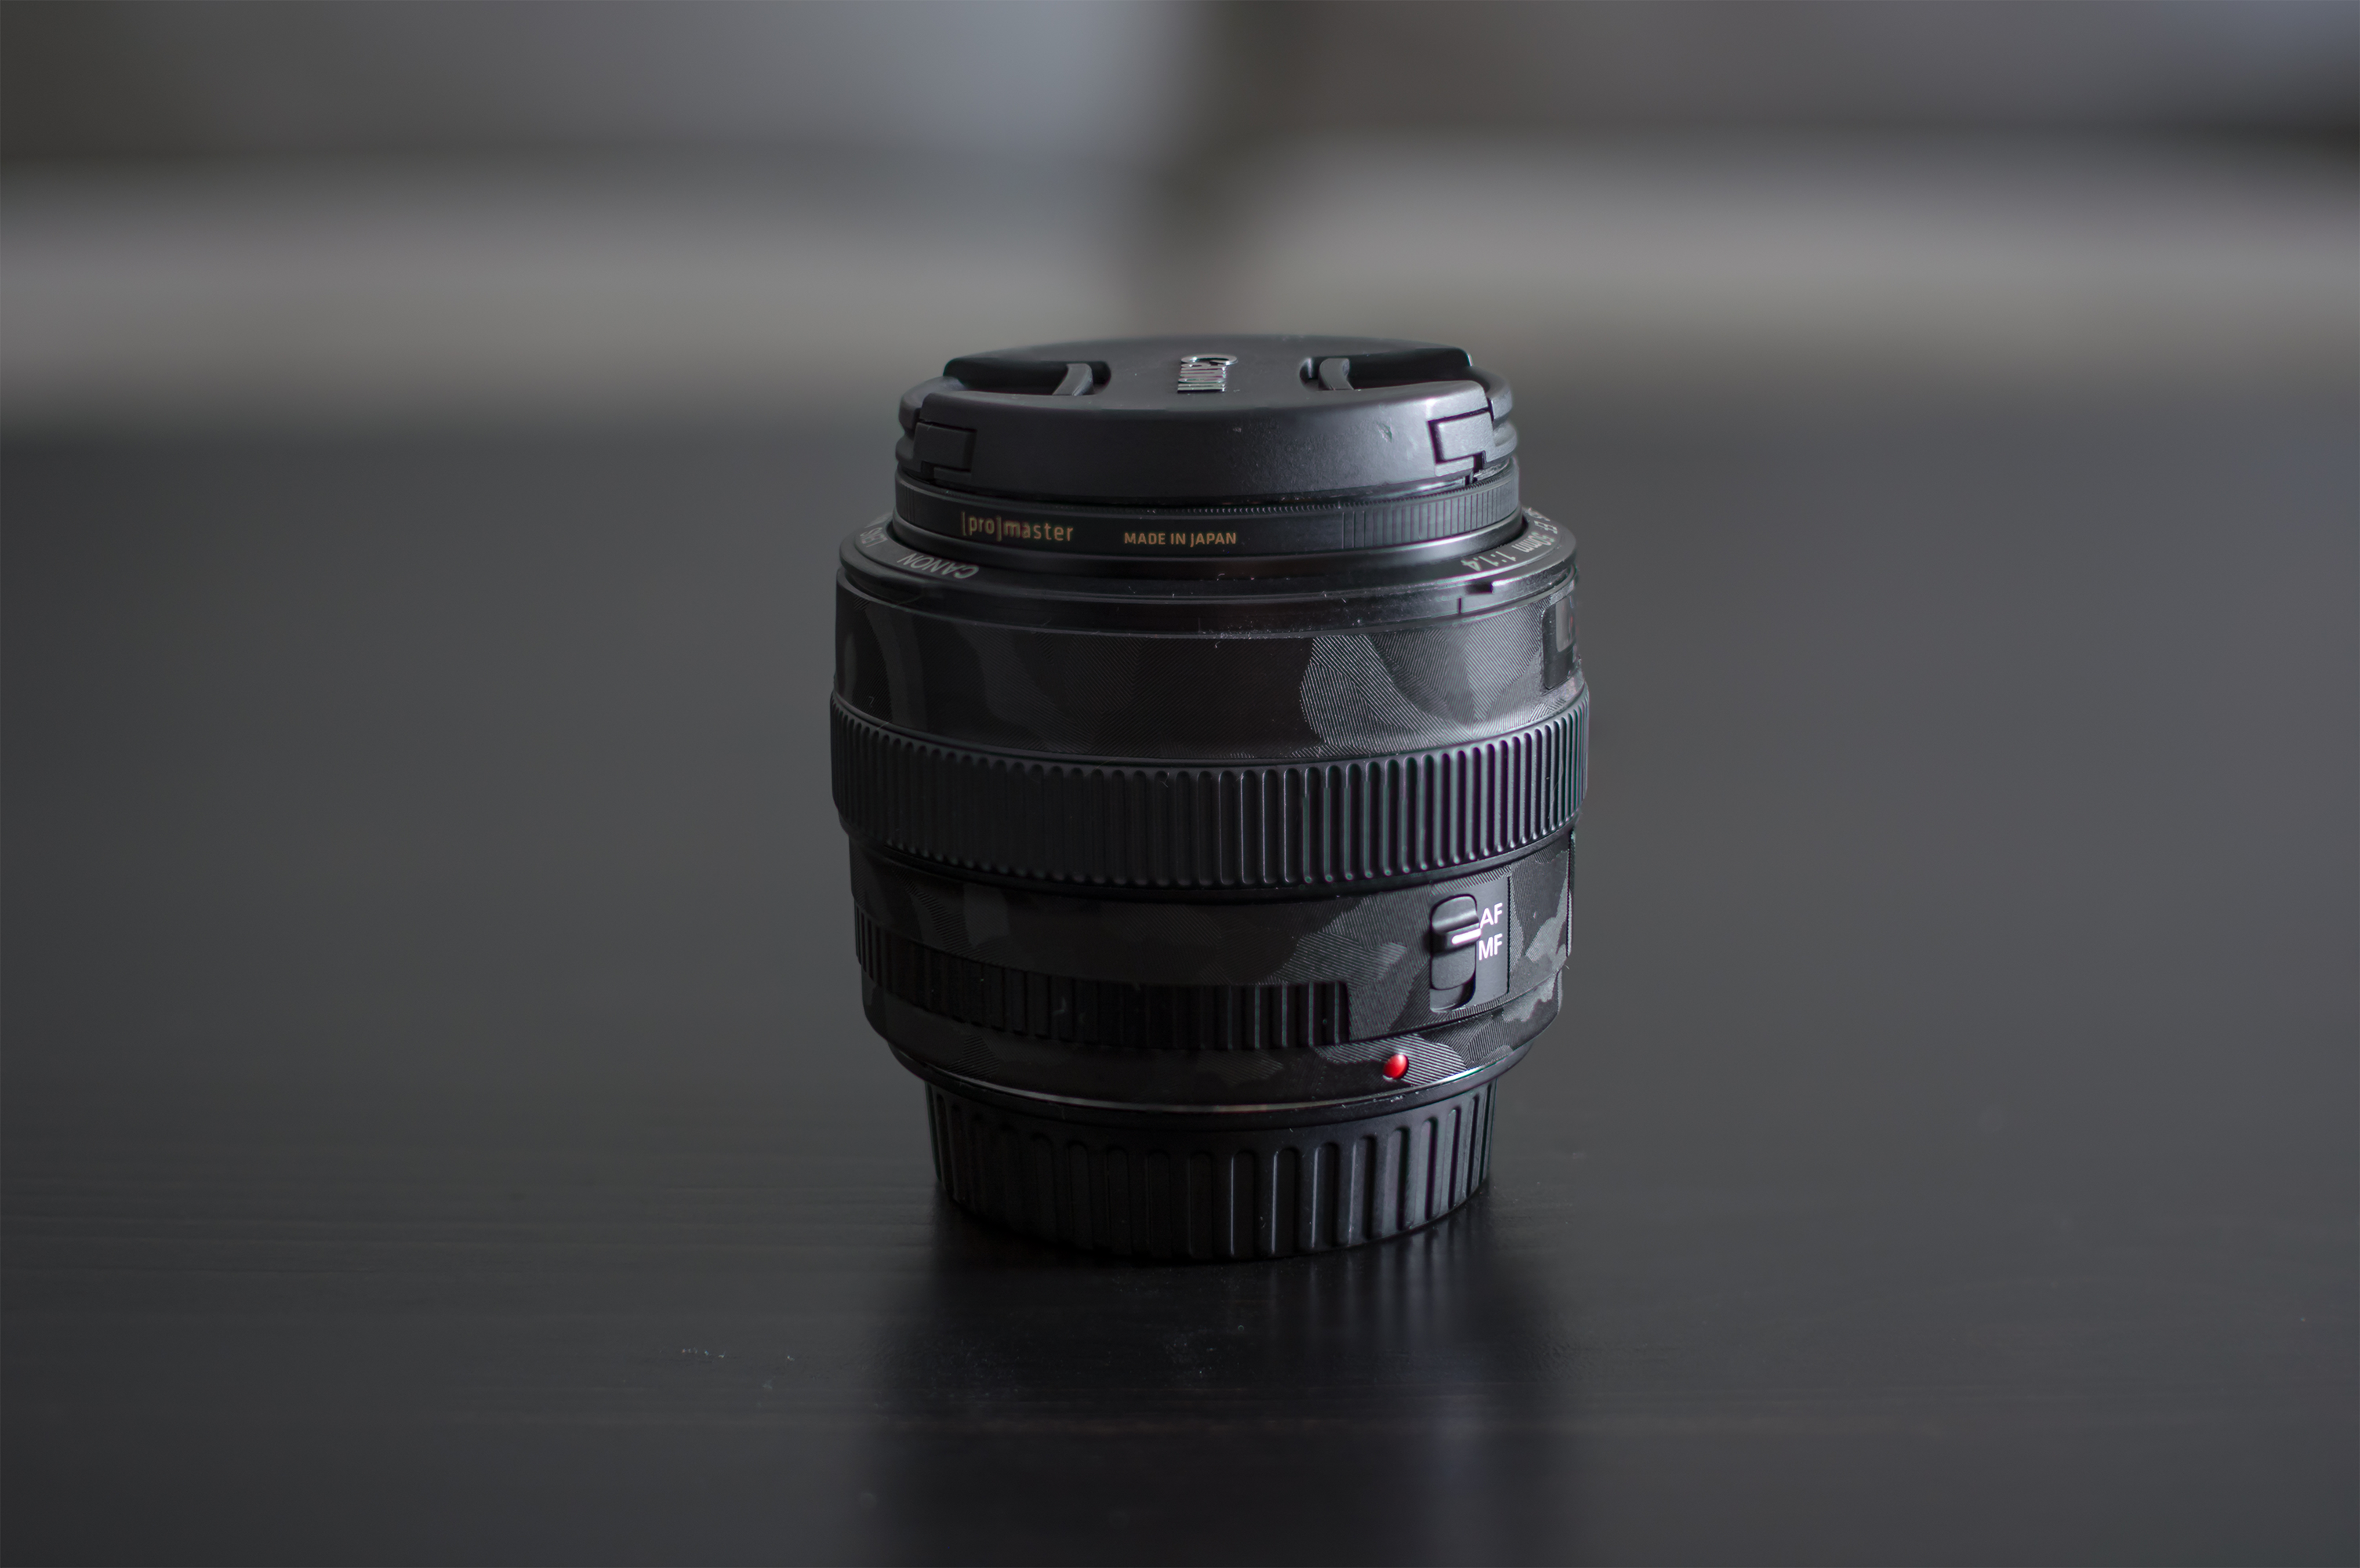 Canon 50mm f/1.4 with Shadow Black Camo Lens Guard